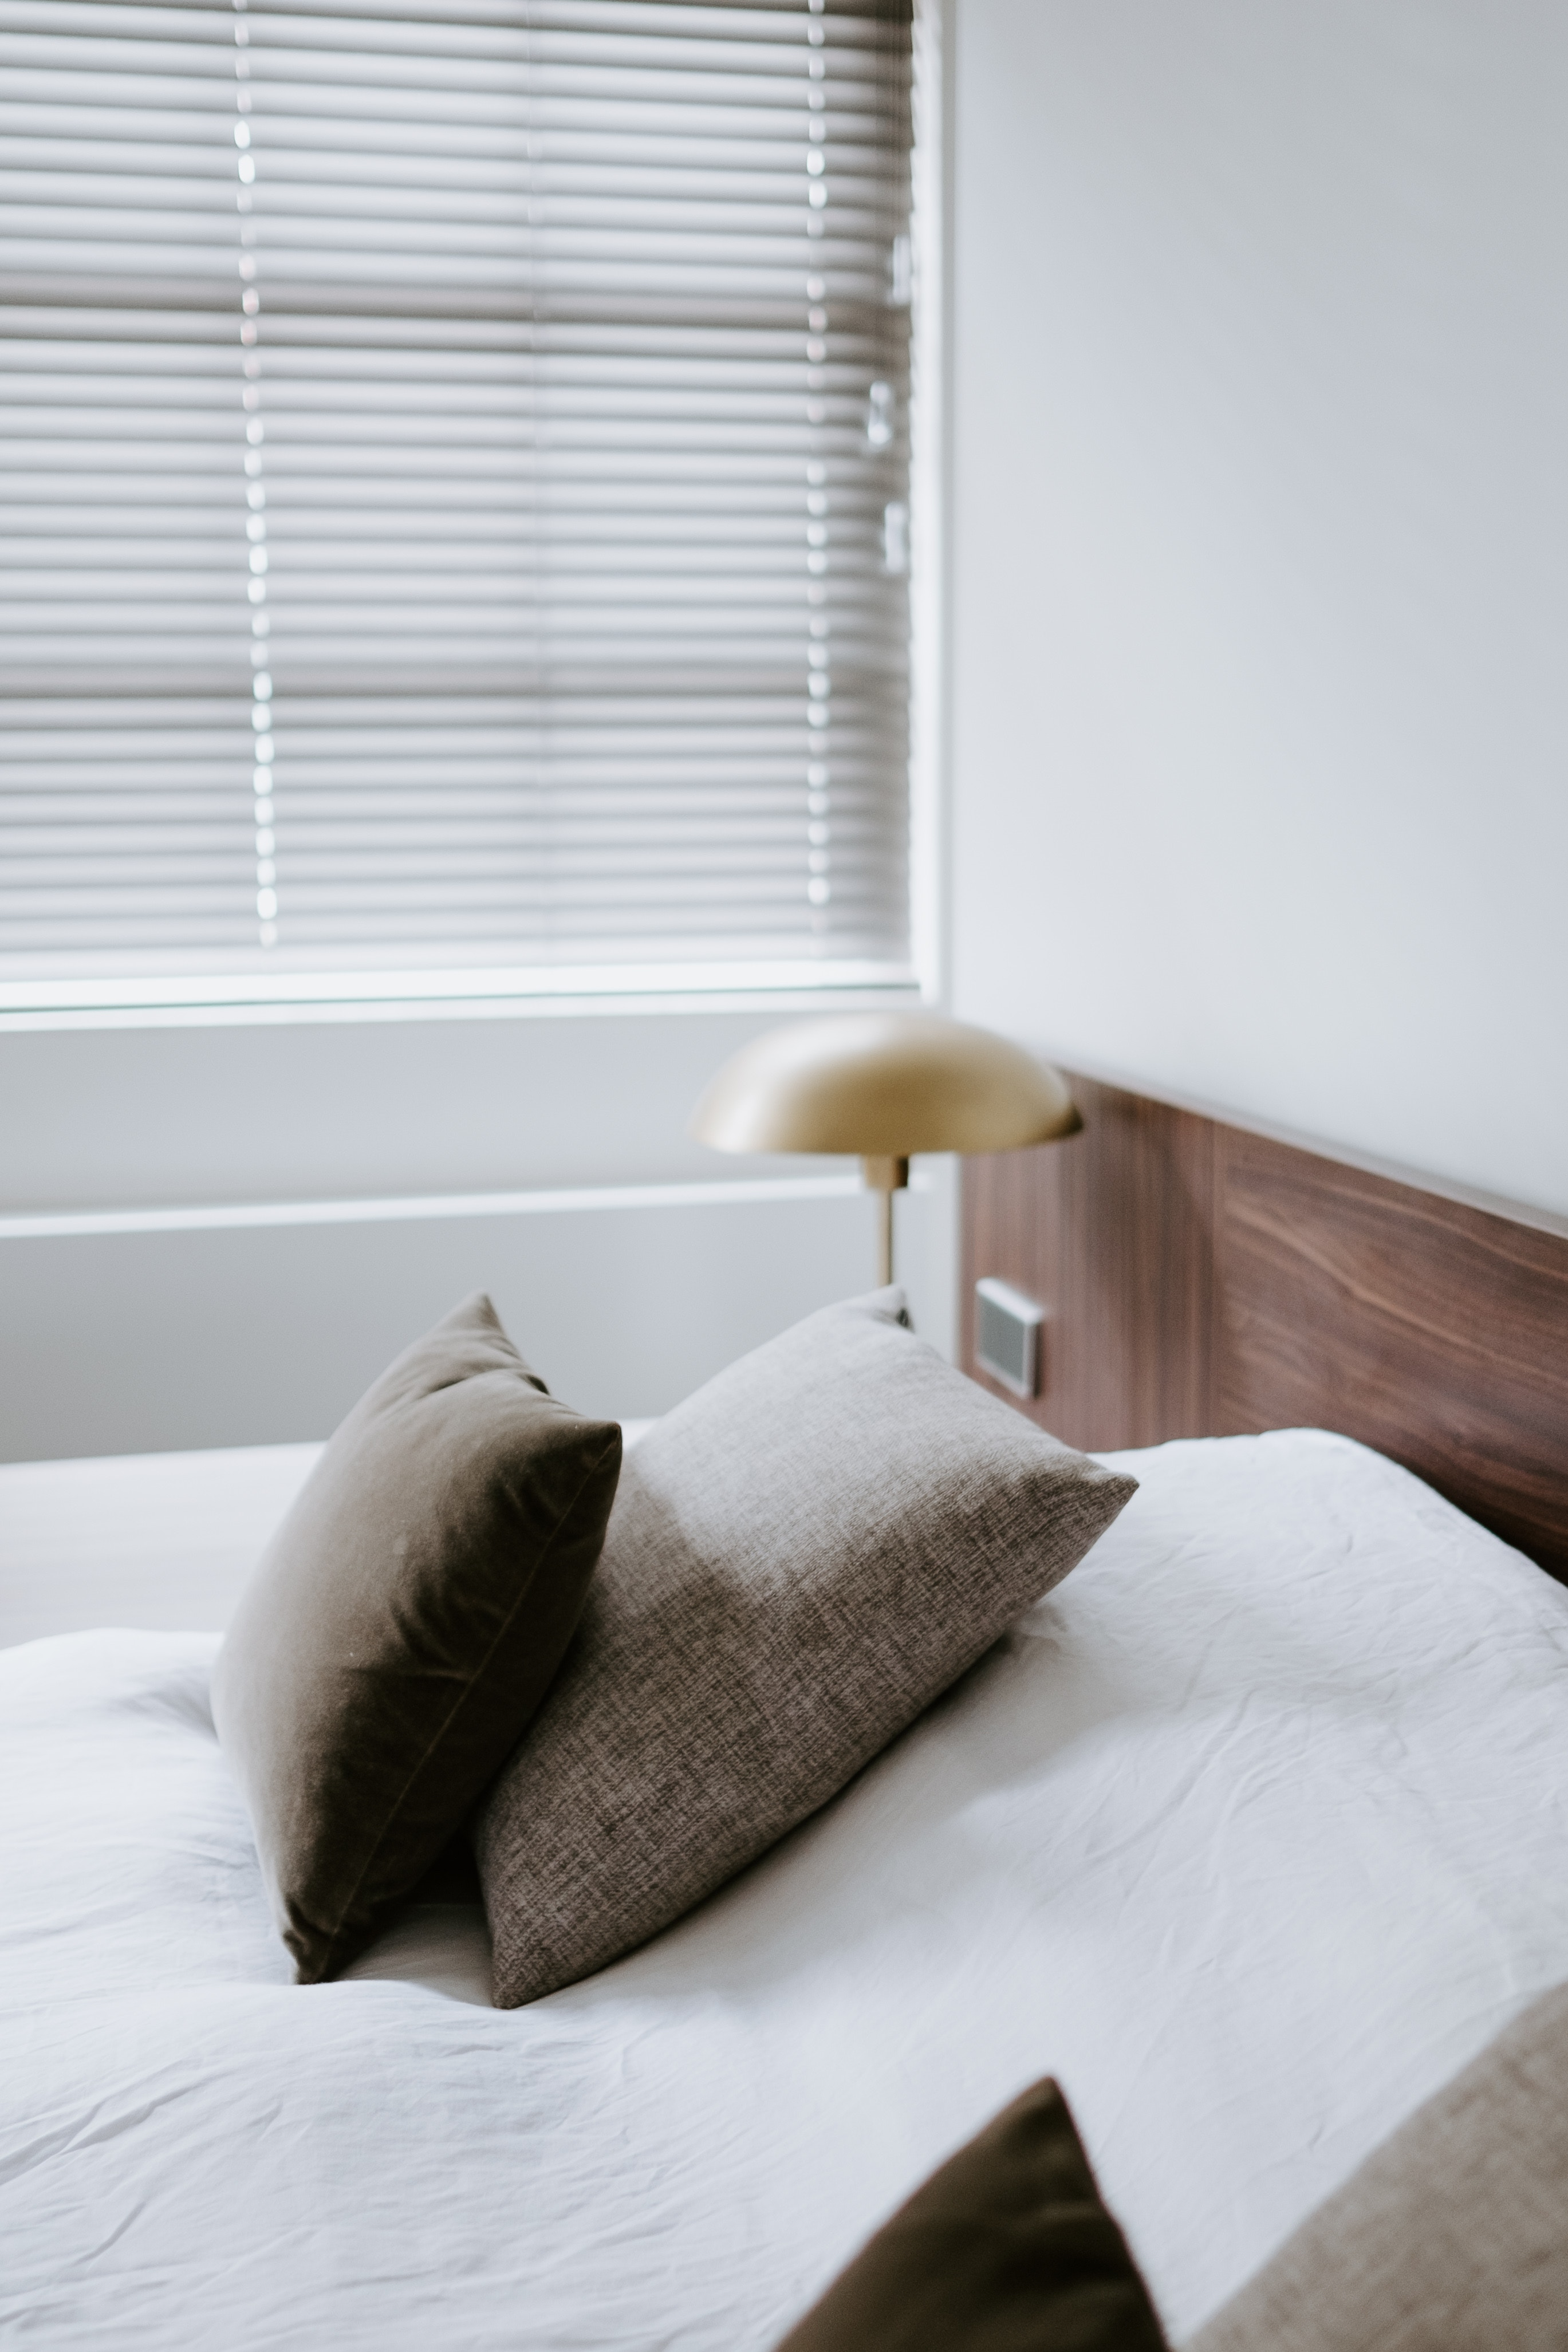 bed with pillows near Venetian blinds